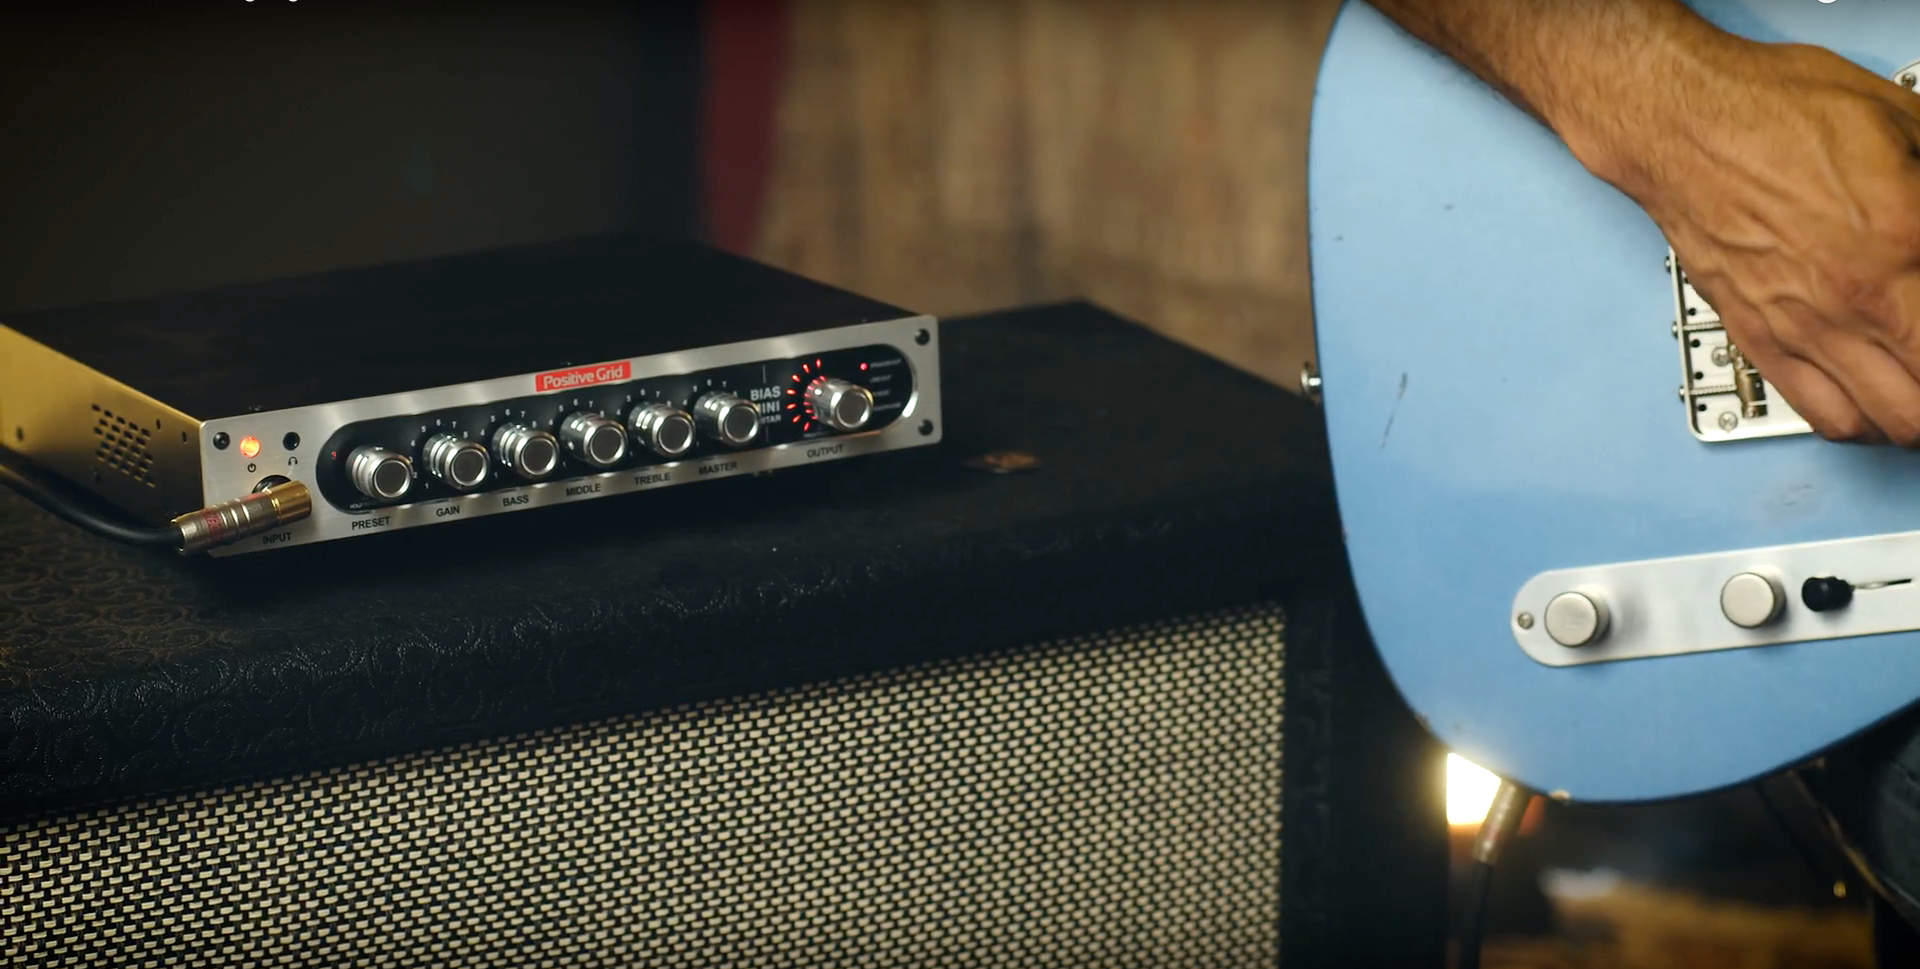 BIAS MINI Amplifier | What is BIAS MINI?